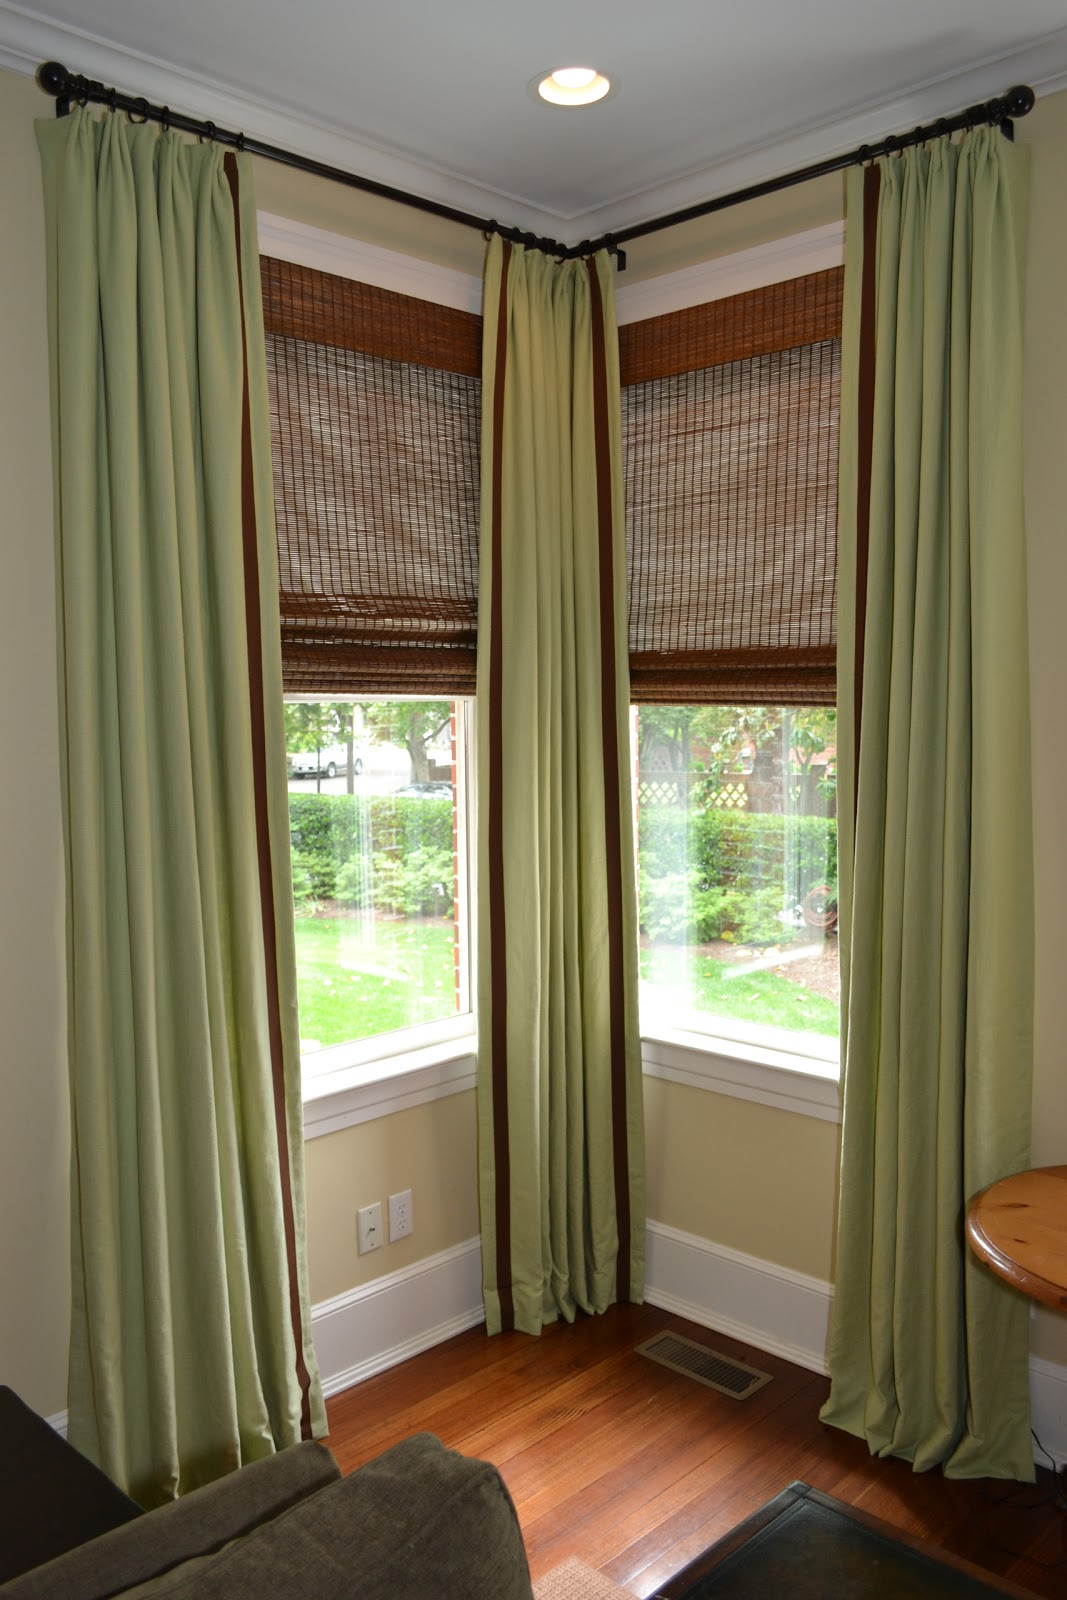 Corner window curtain ideas specs price release date for Window treatment ideas